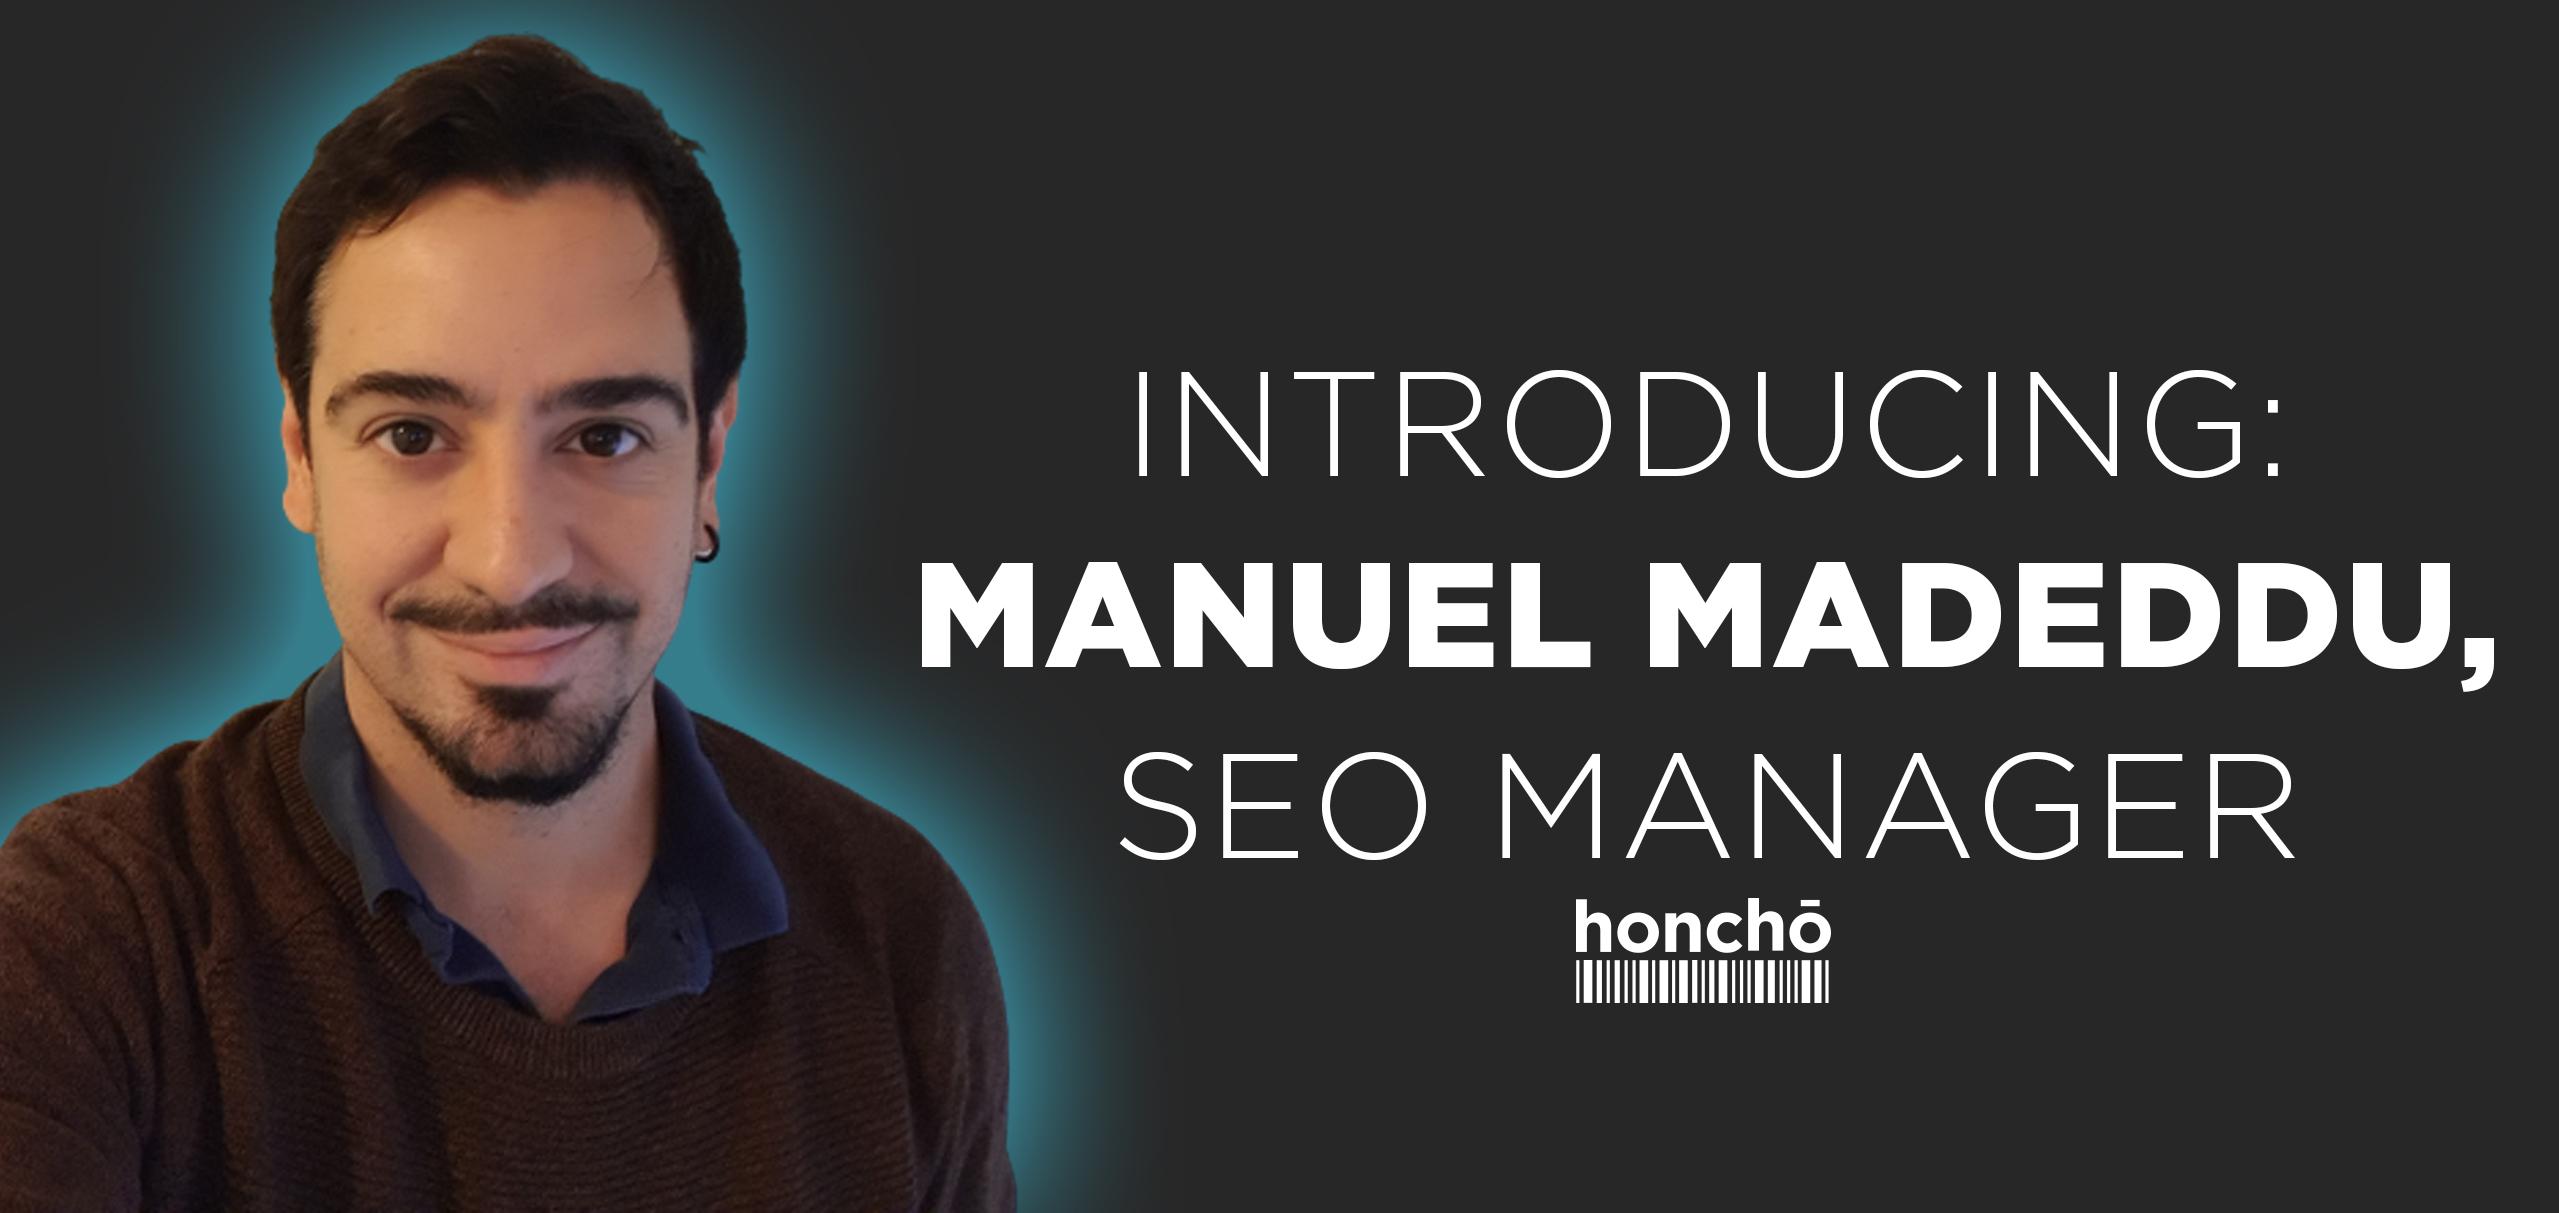 Q&A with Manuel Madeddu, SEO Manager